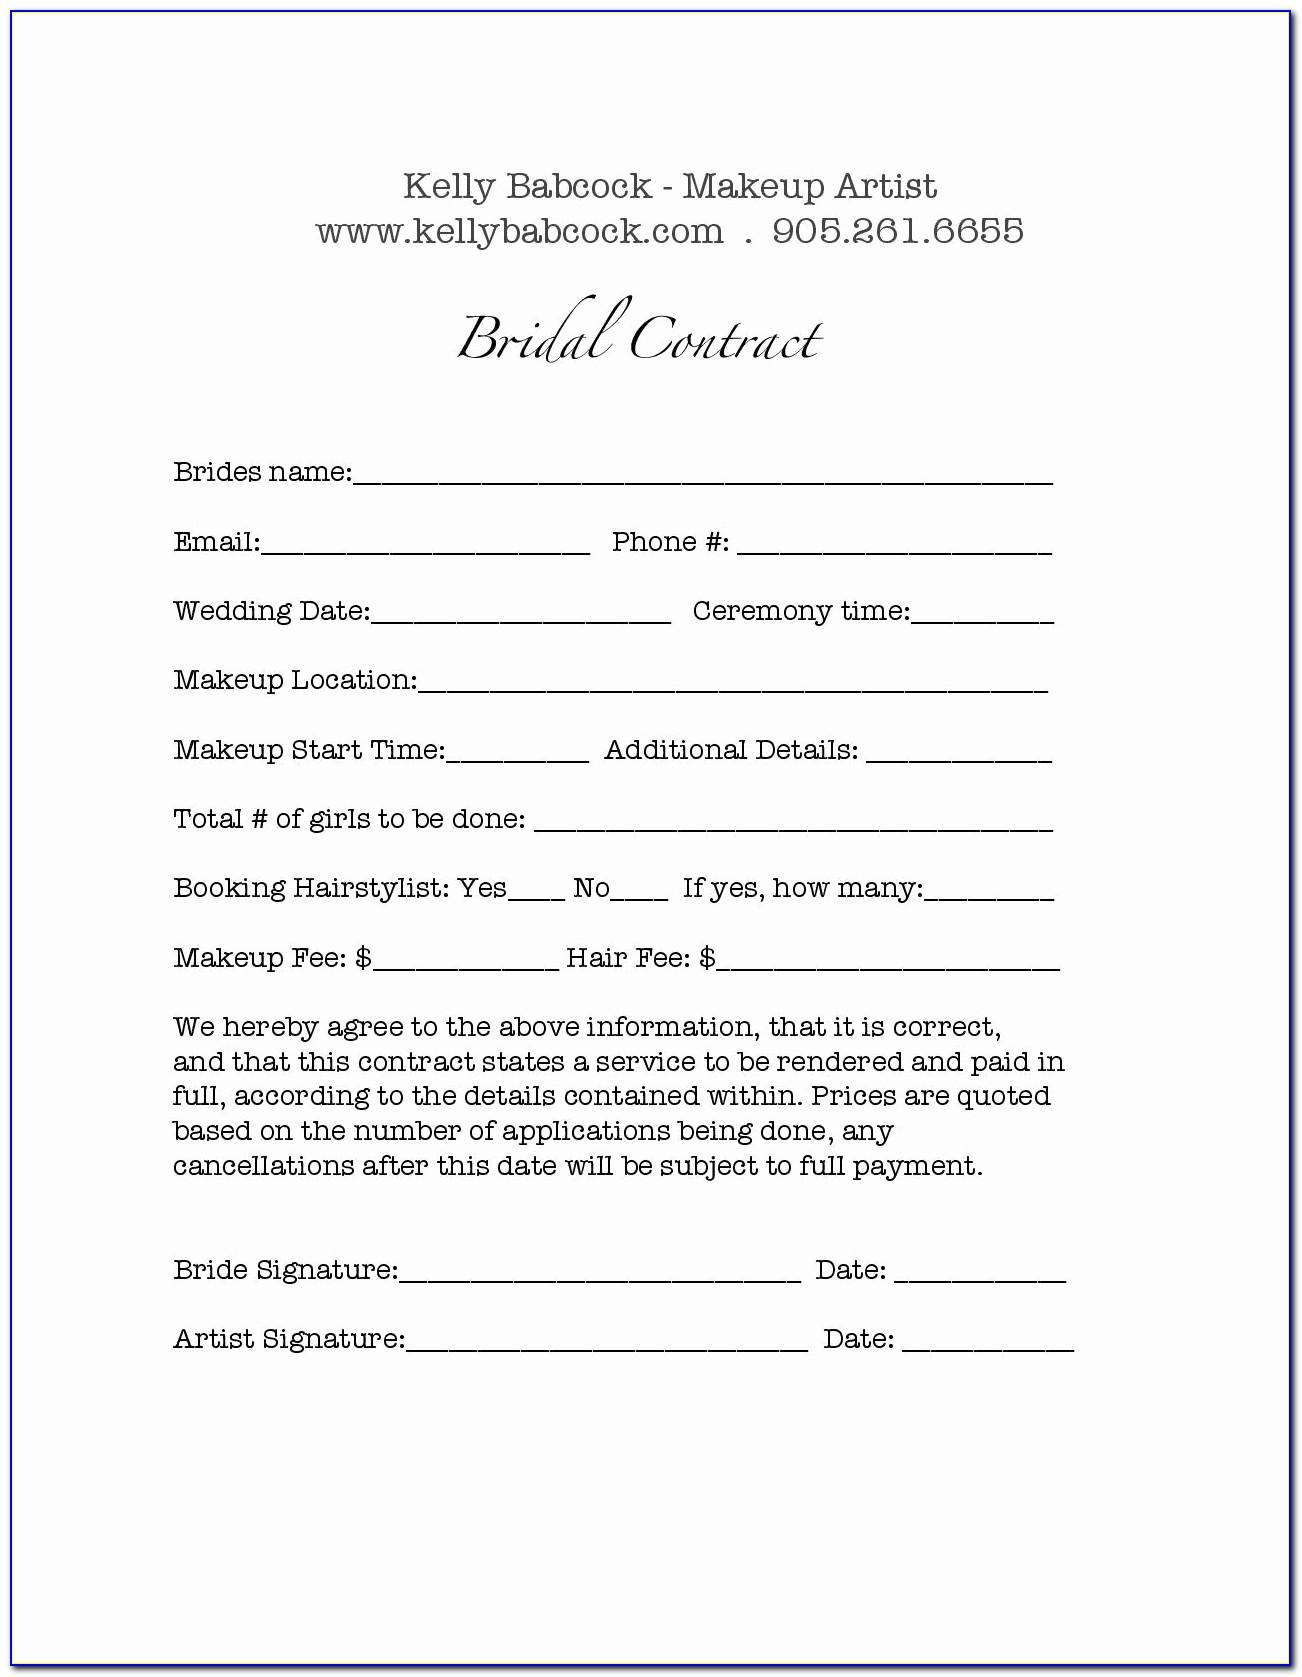 Bridal Makeup Artist Contract Template